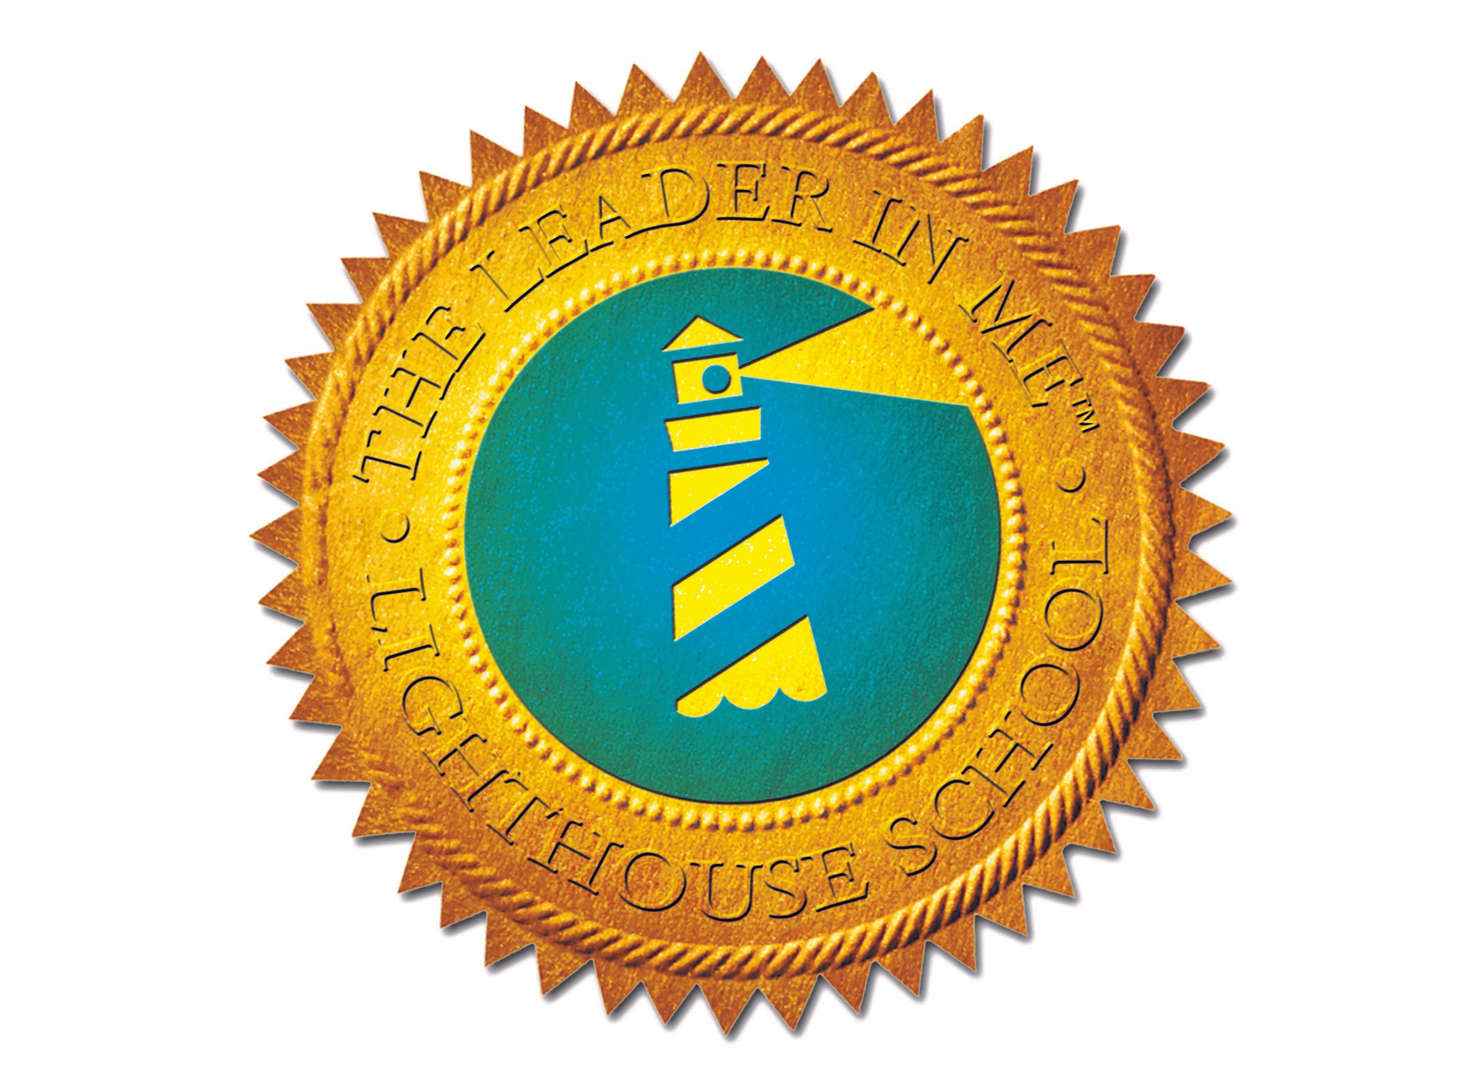 Lighthouse logo of PS 53